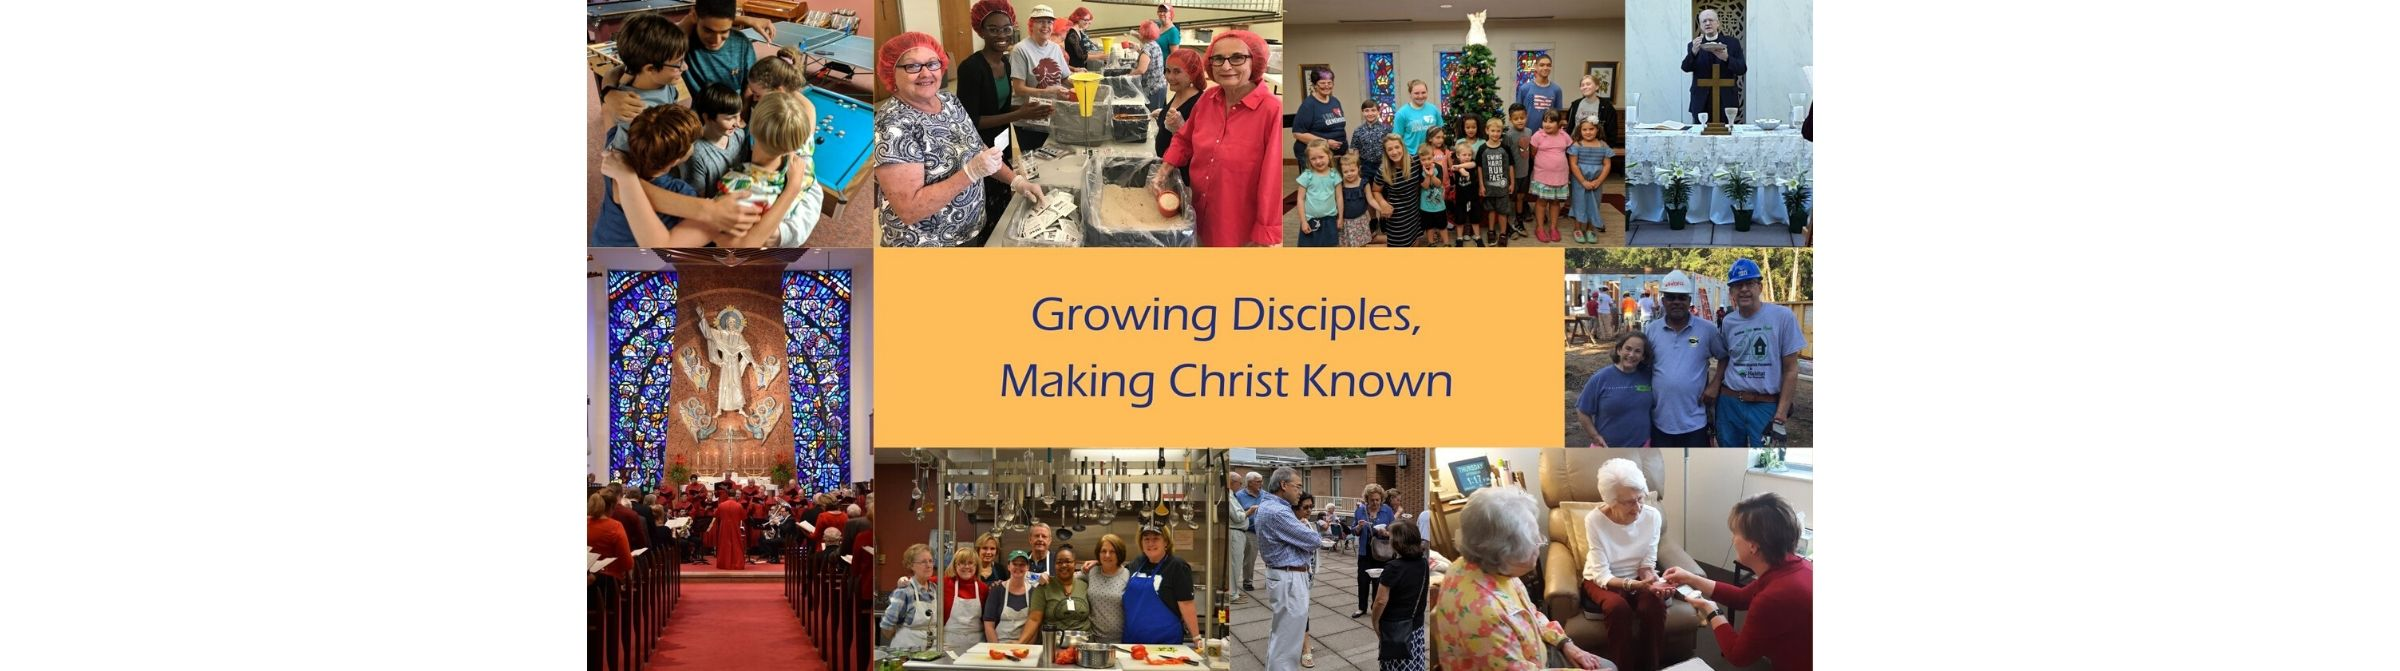 Growing Disciples